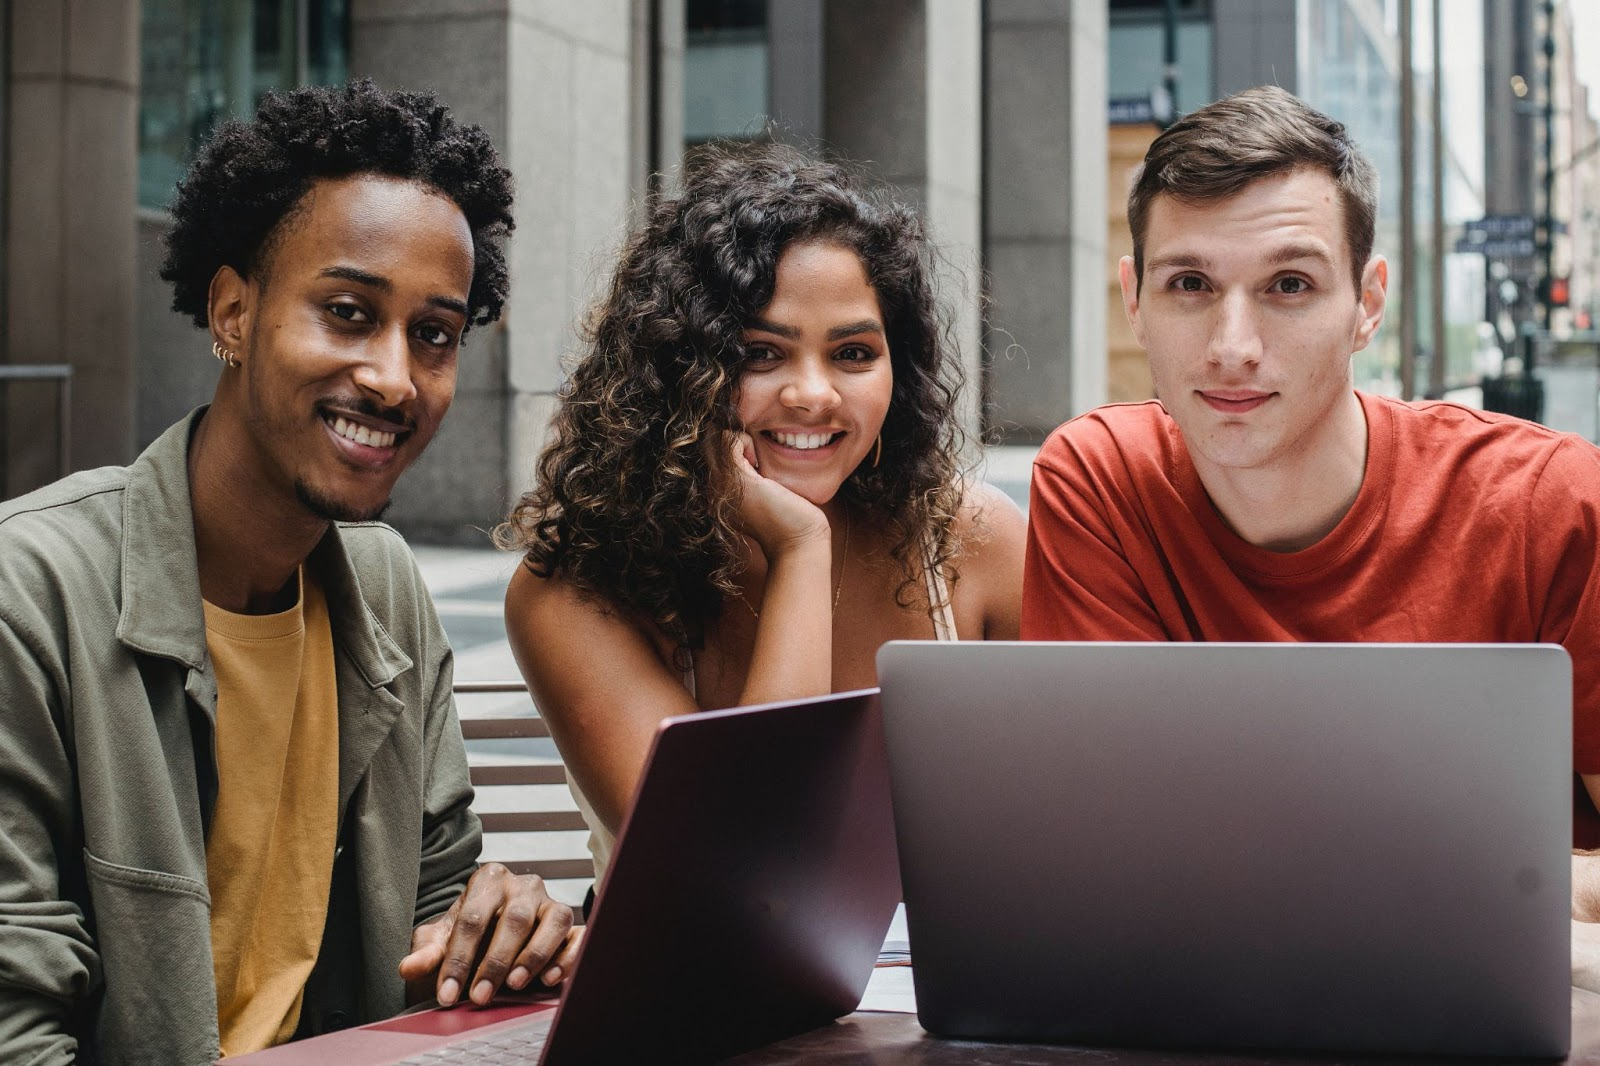 Remote group work and the best student collaboration tools